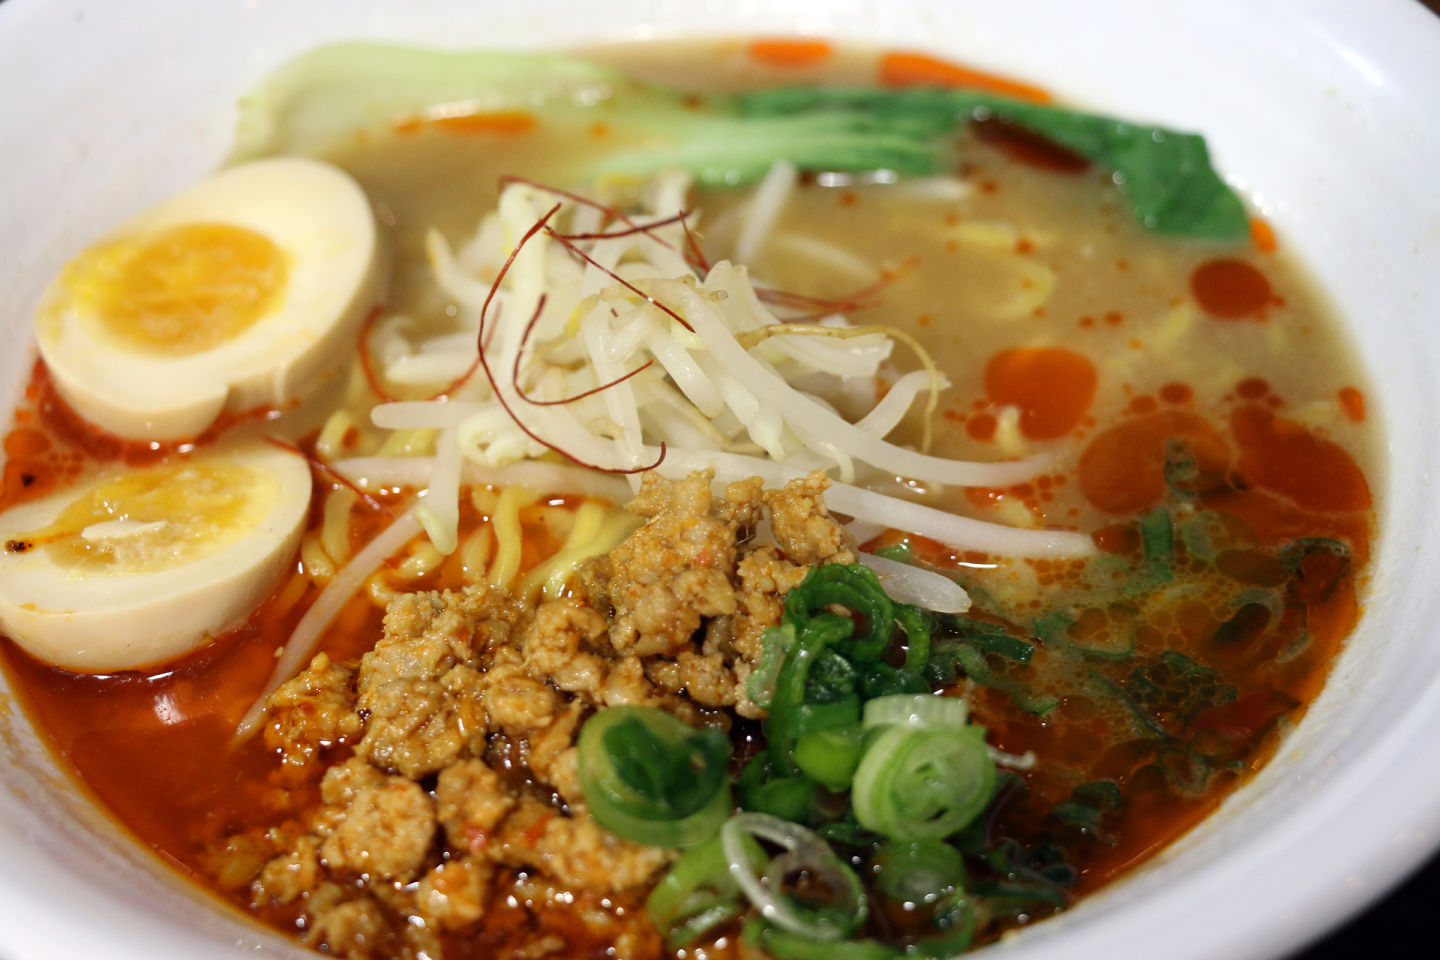 Spicy ramen with ground pork Kim Westerman